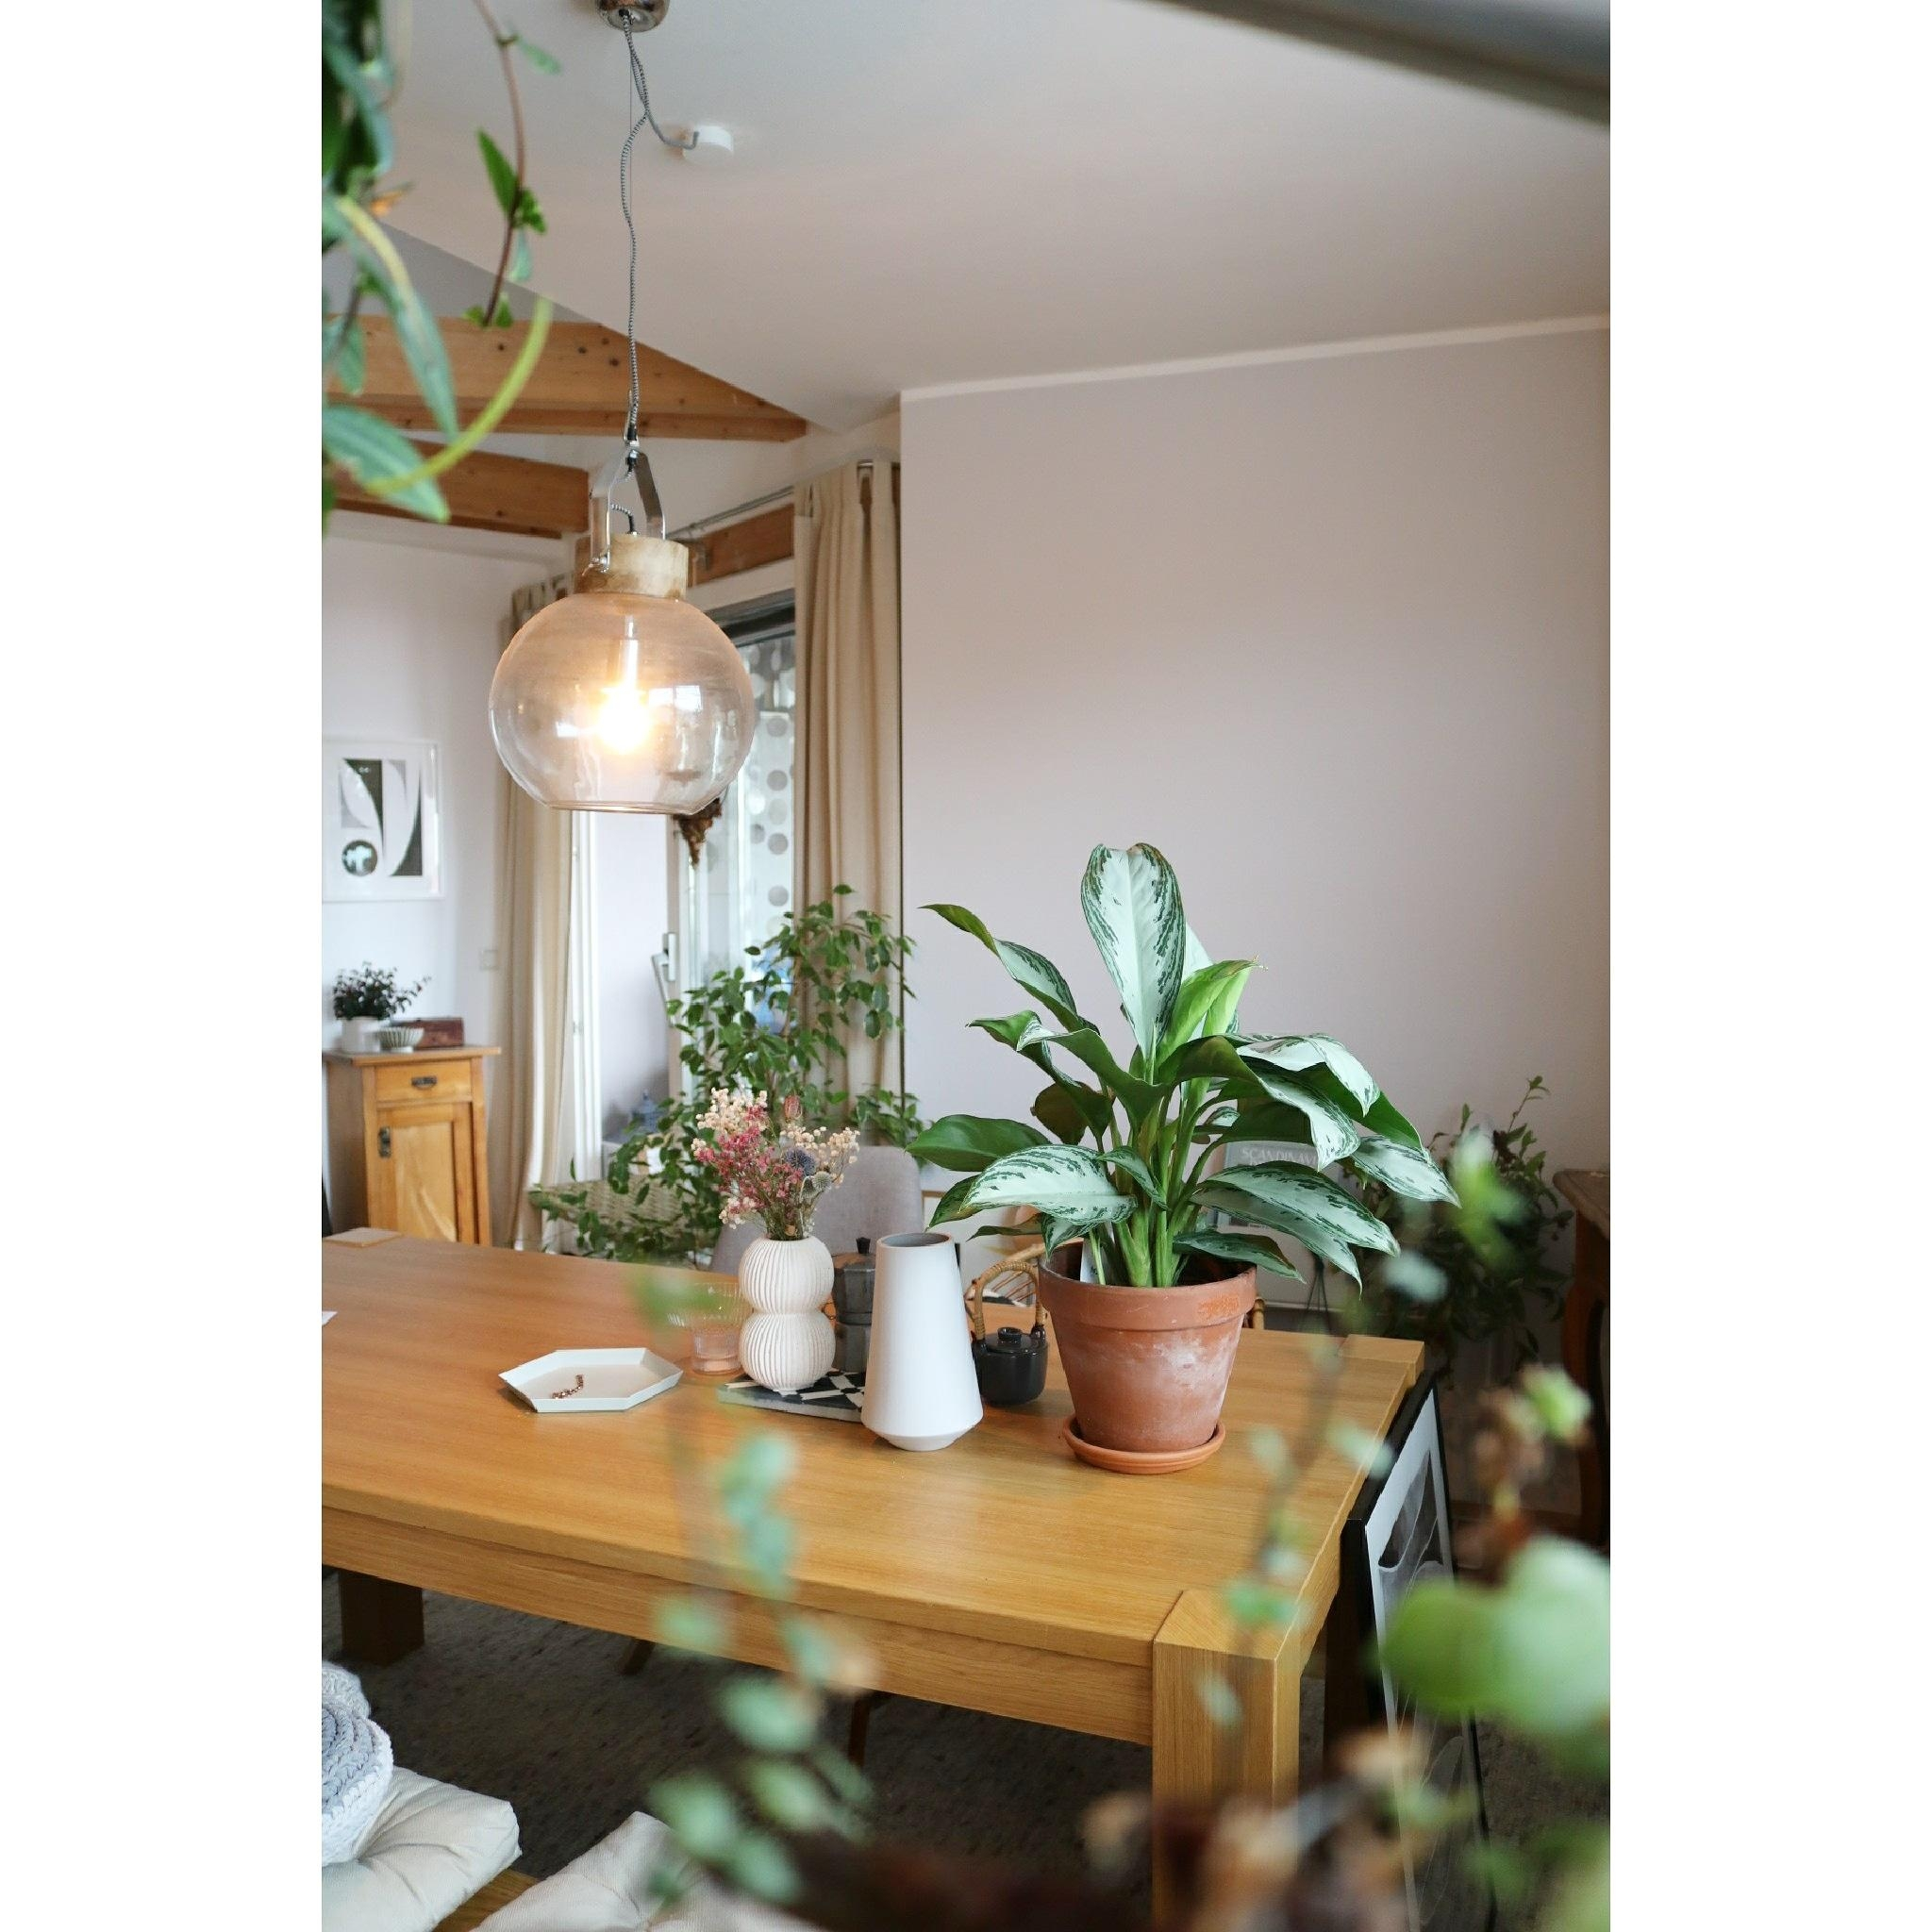 Urbanjungle greenliving green interior myhome plants diningroom onthetable design hygge  ccbbadb0 236c 493b 8b00 711d906f2c2f